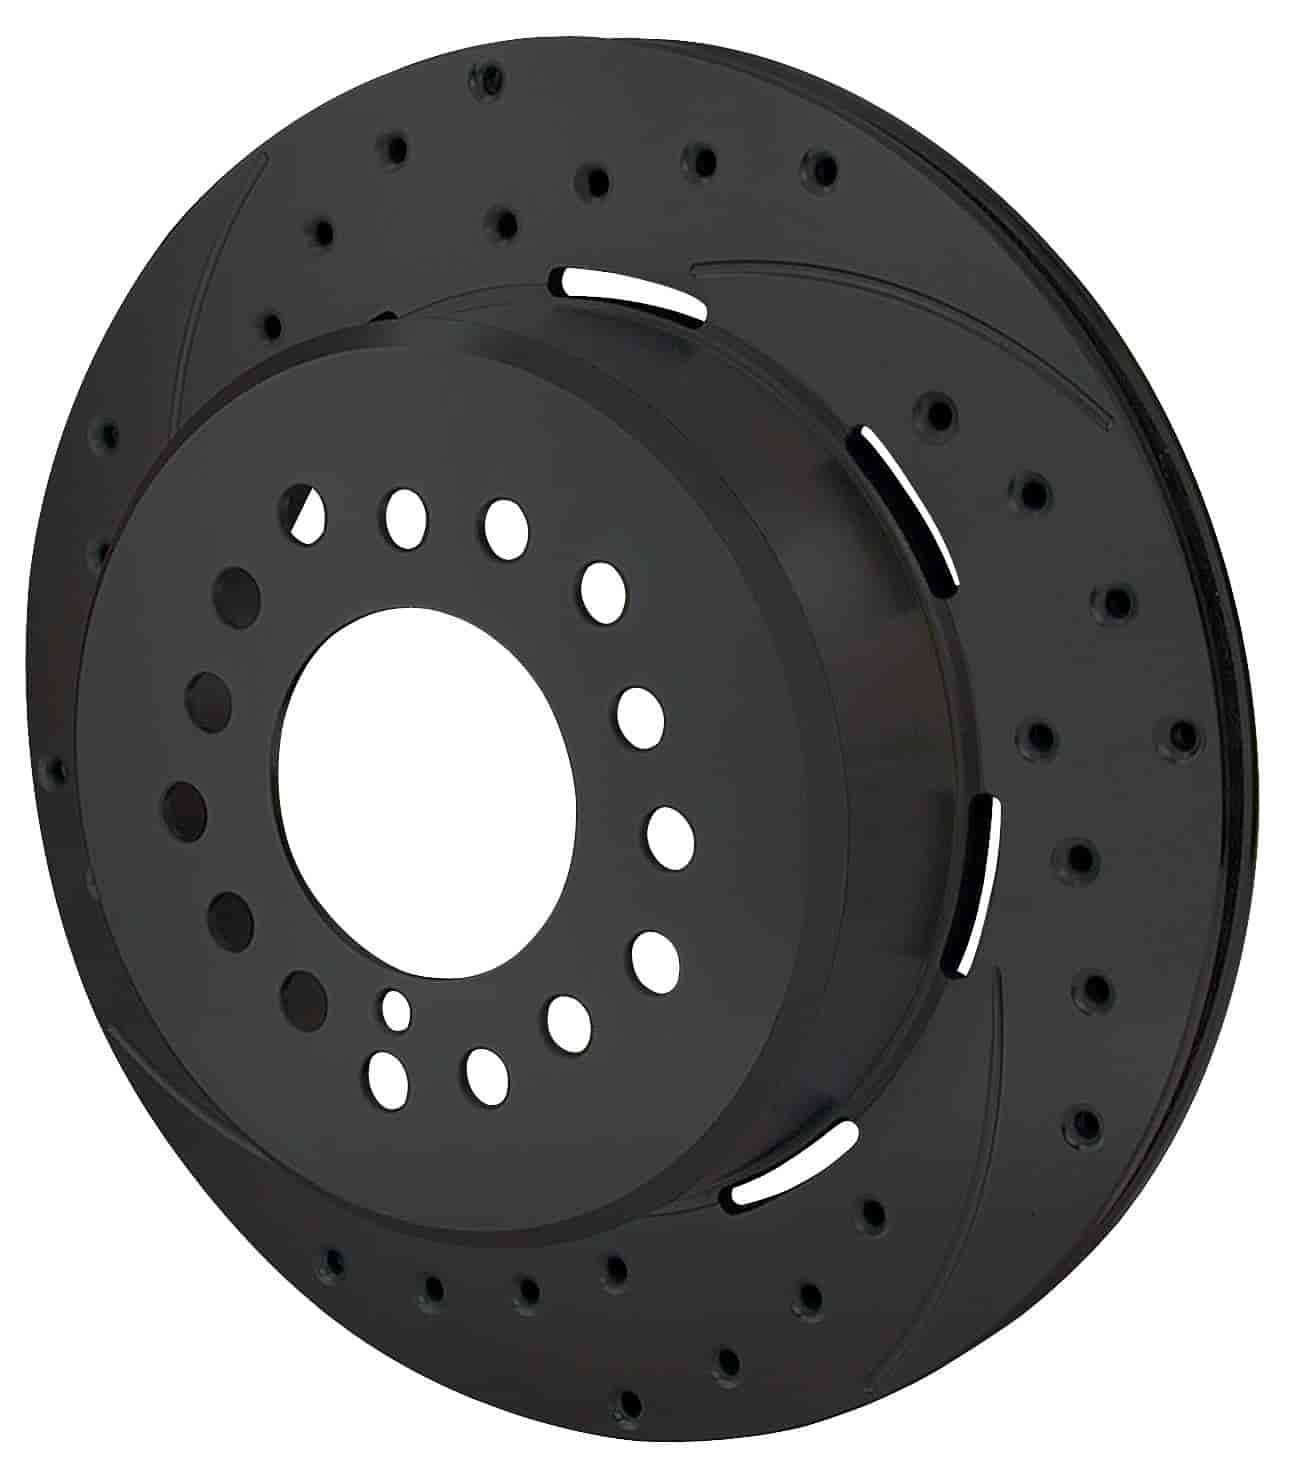 Wilwood 160-9813-BK - Wilwood Steel Rotors